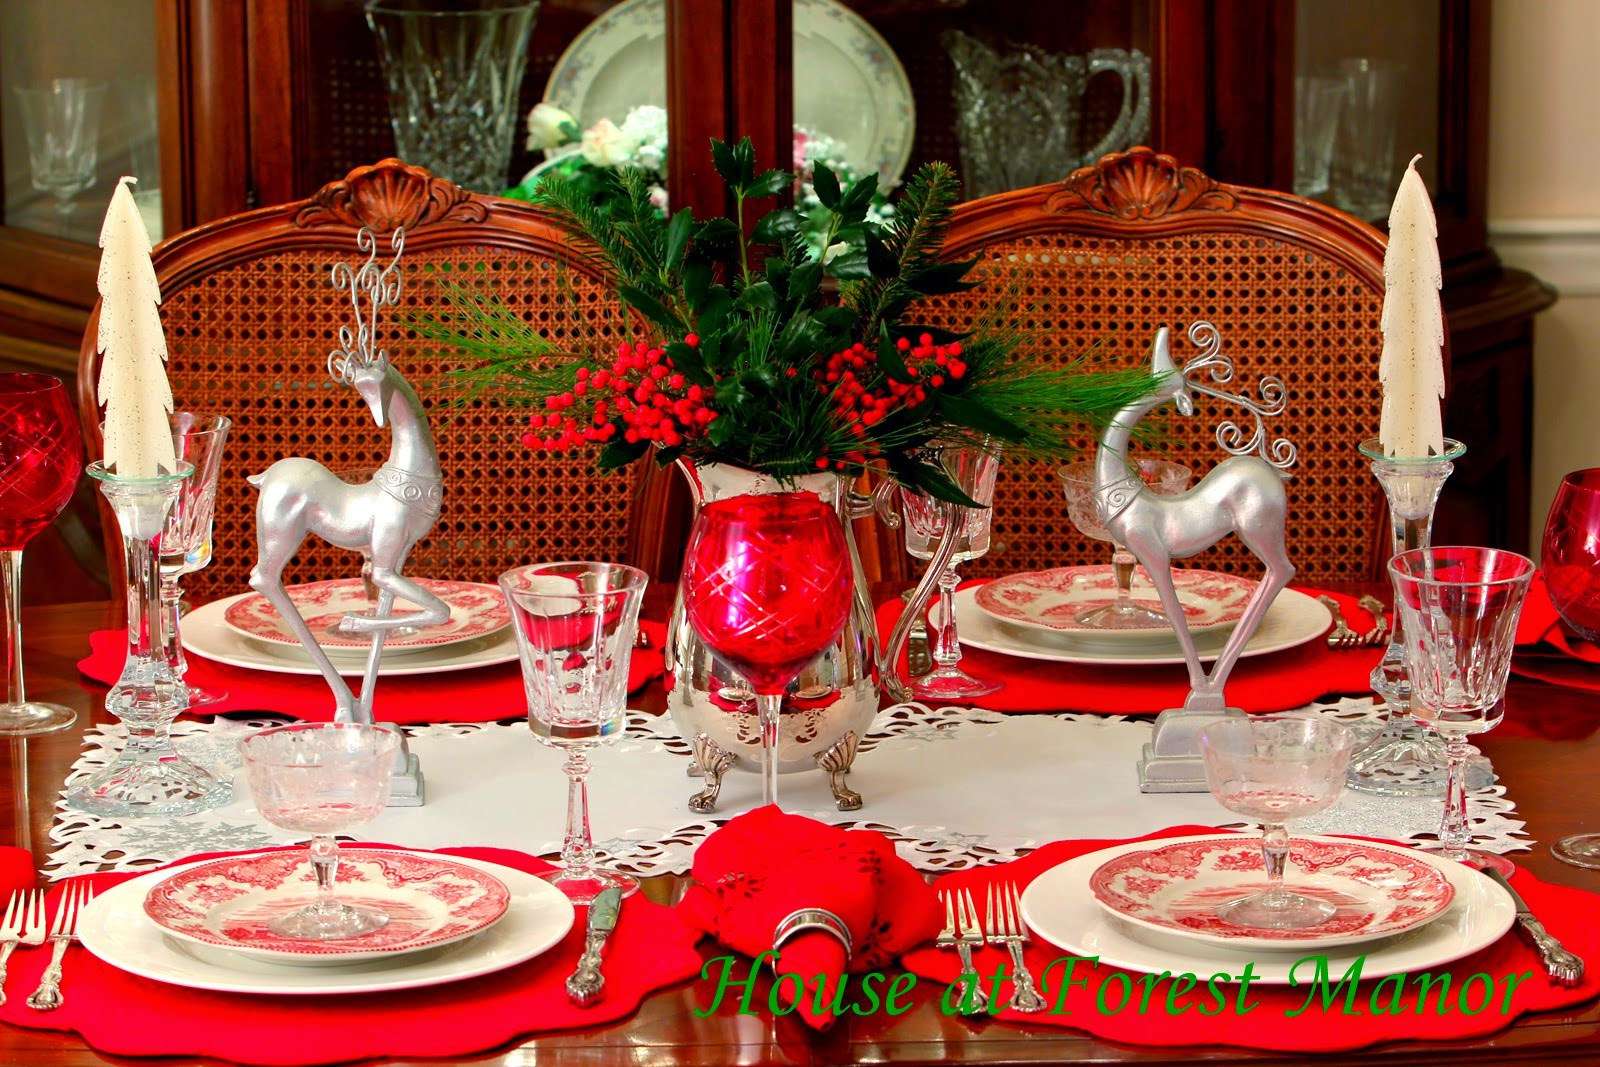 A Silver and Red Christmas Table